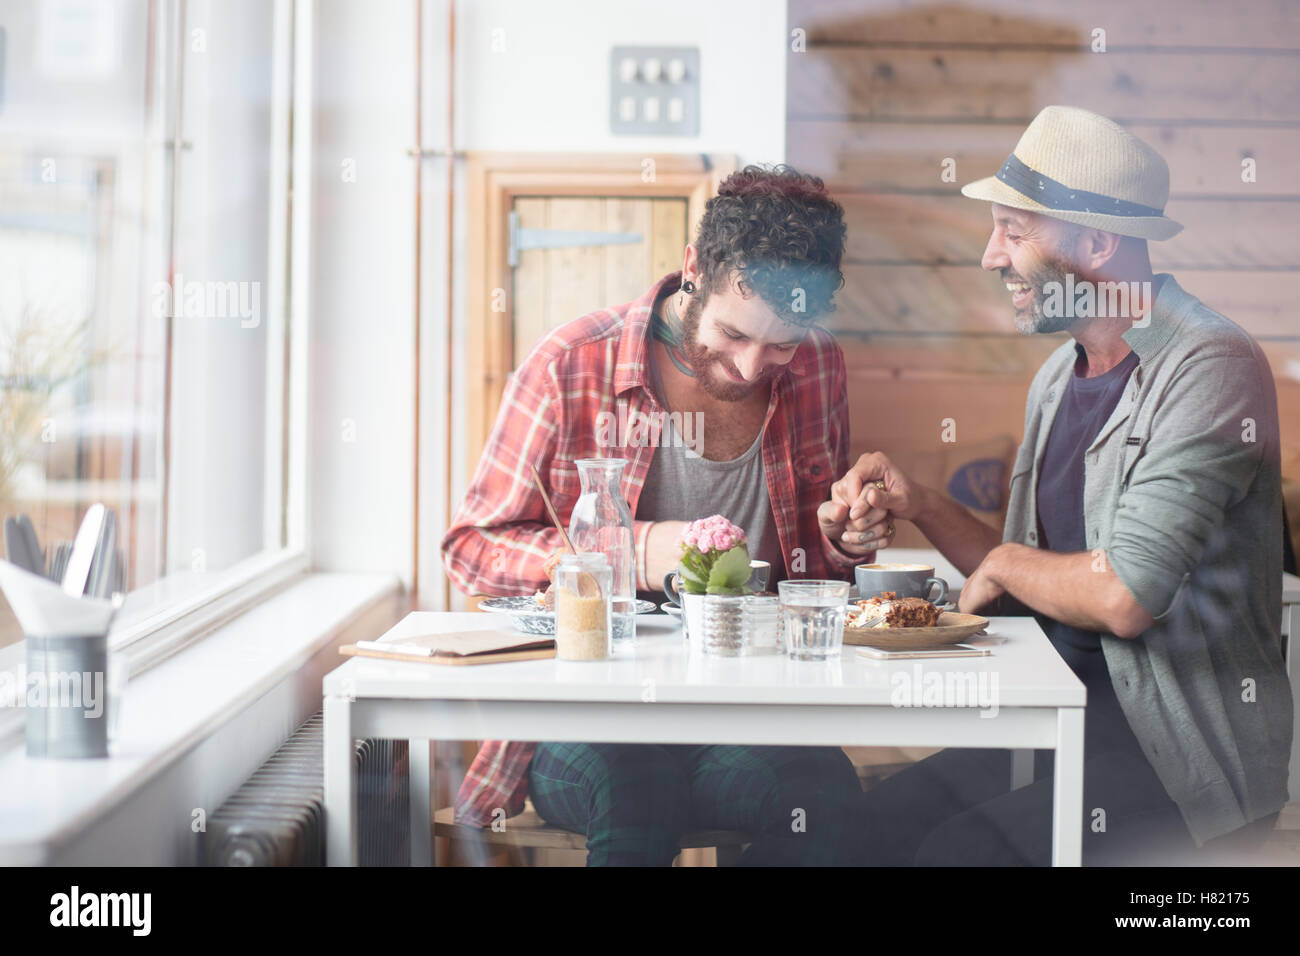 Gay couple sat holding hands in cafe - Stock Image